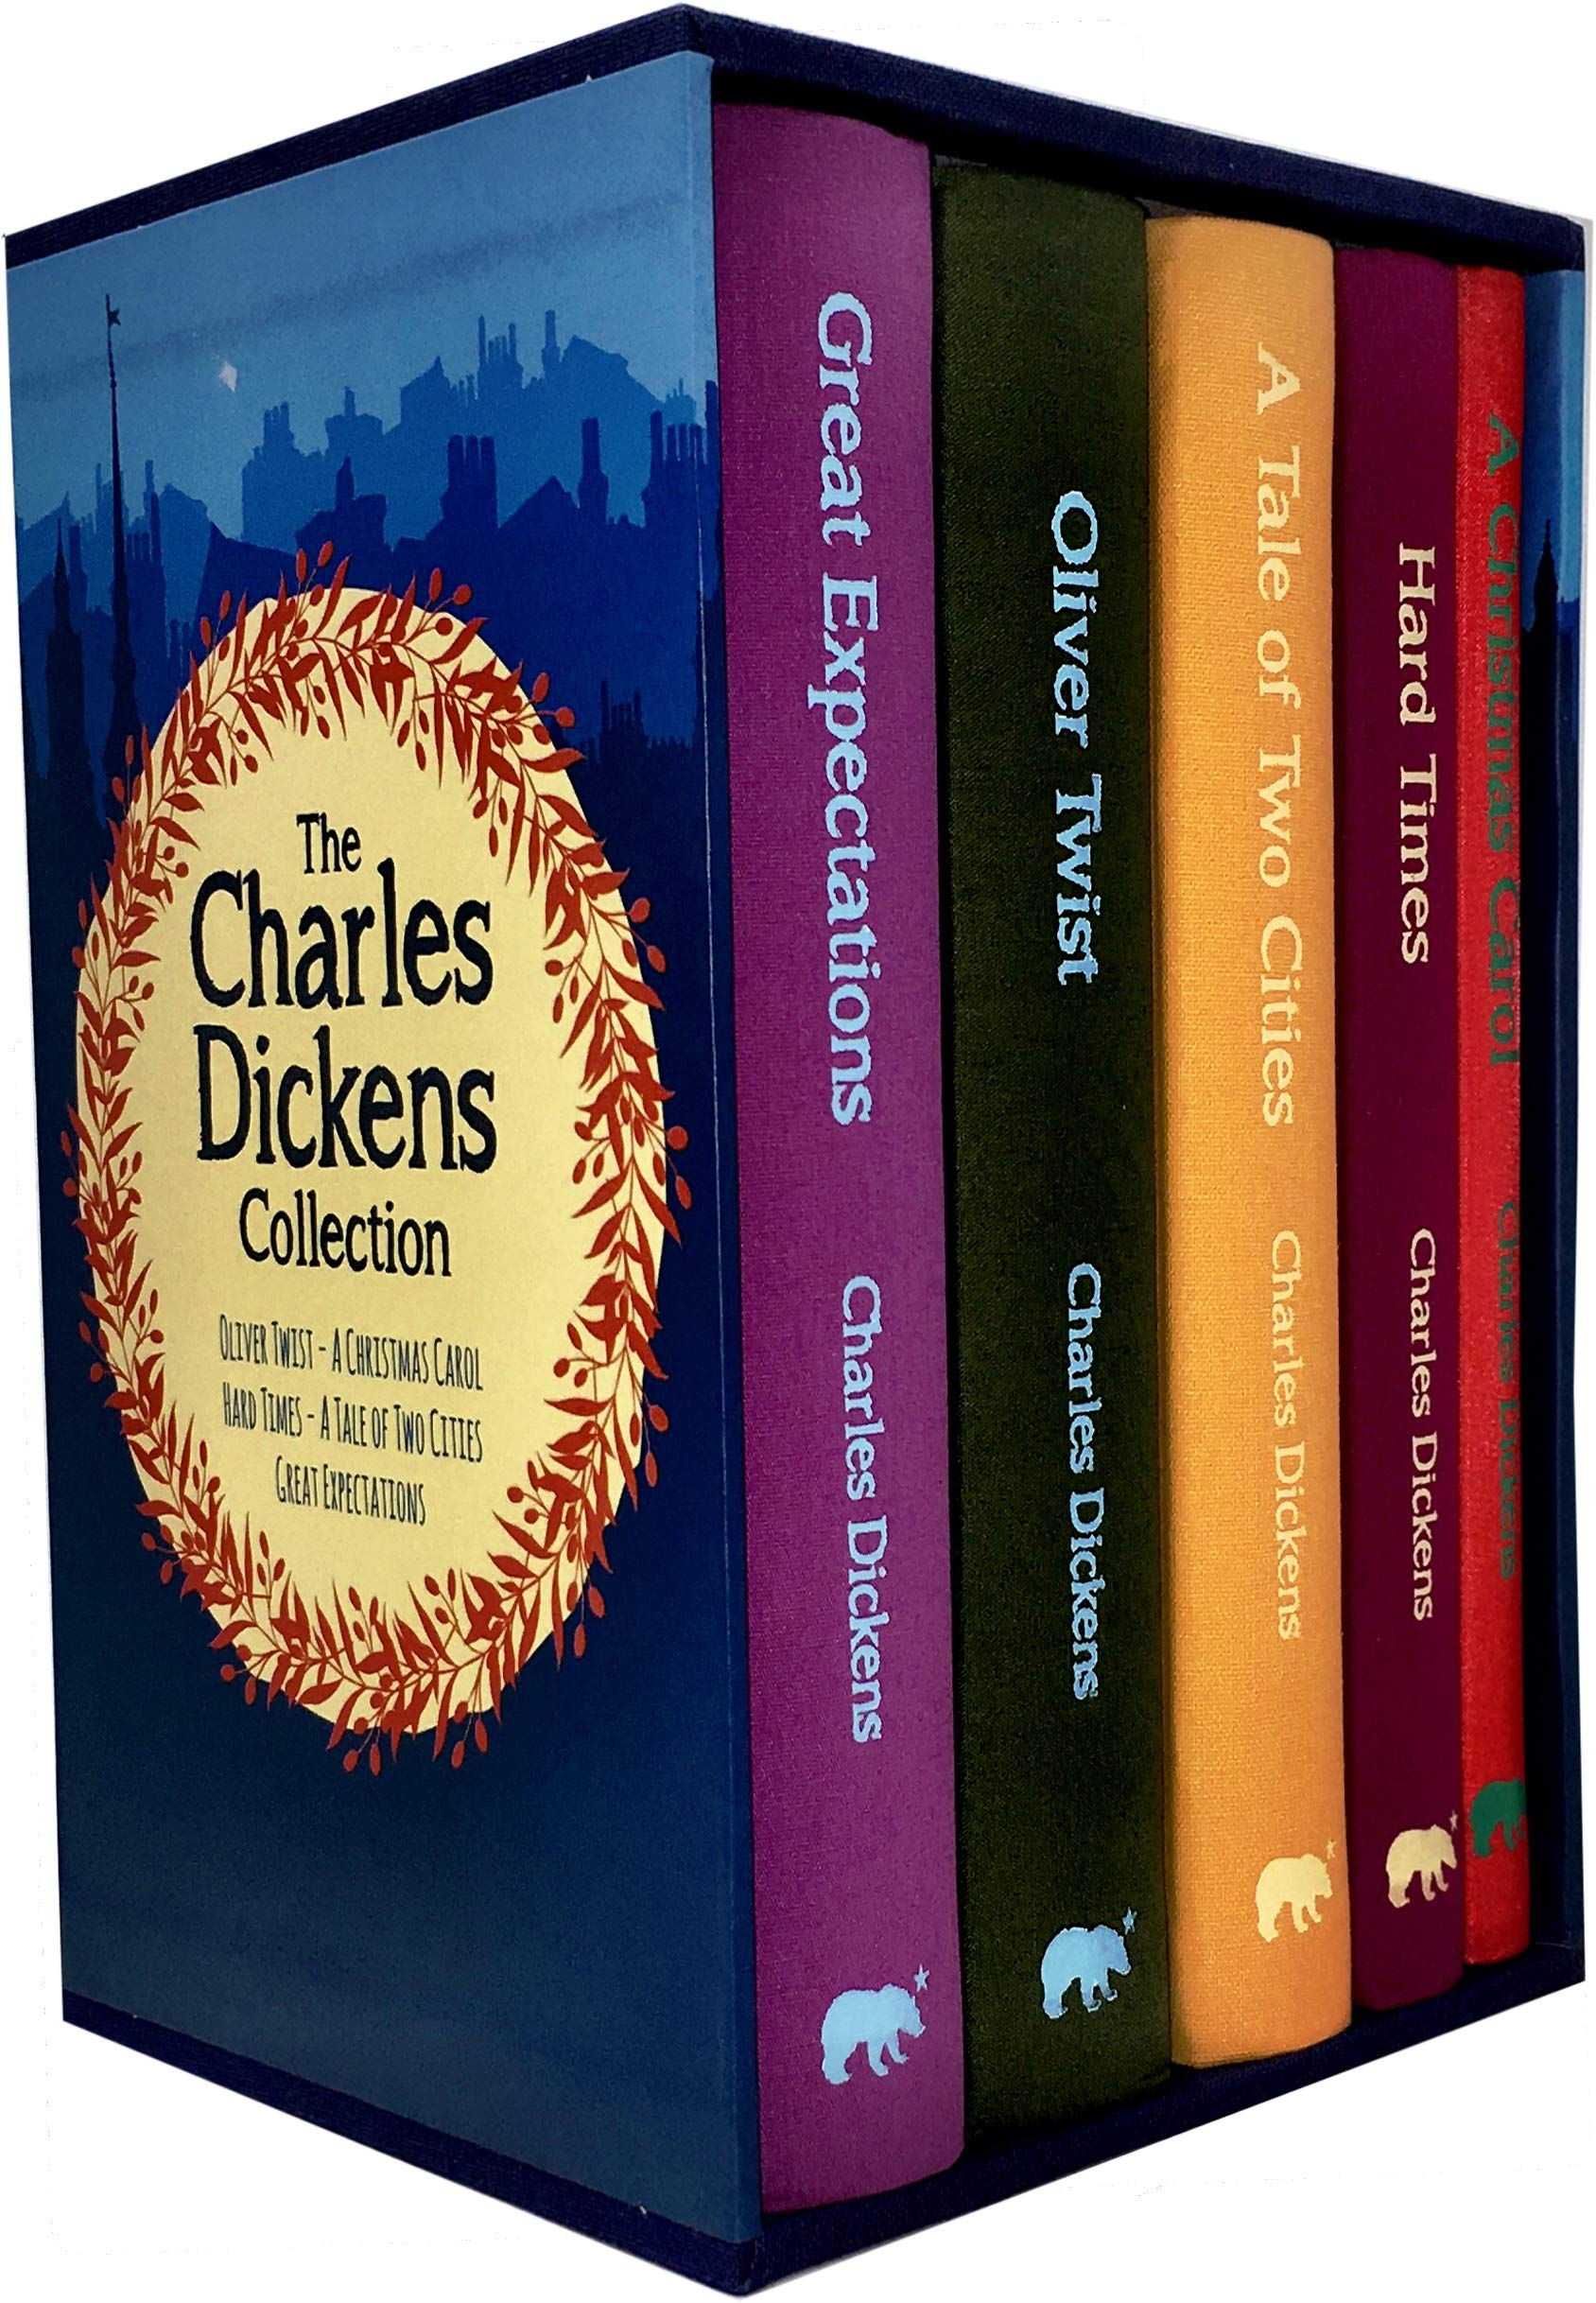 2020 Christmas Cd Twin Cities Collection Charles Dickens 5 Books Collection Box Set (Oliver Twist, A